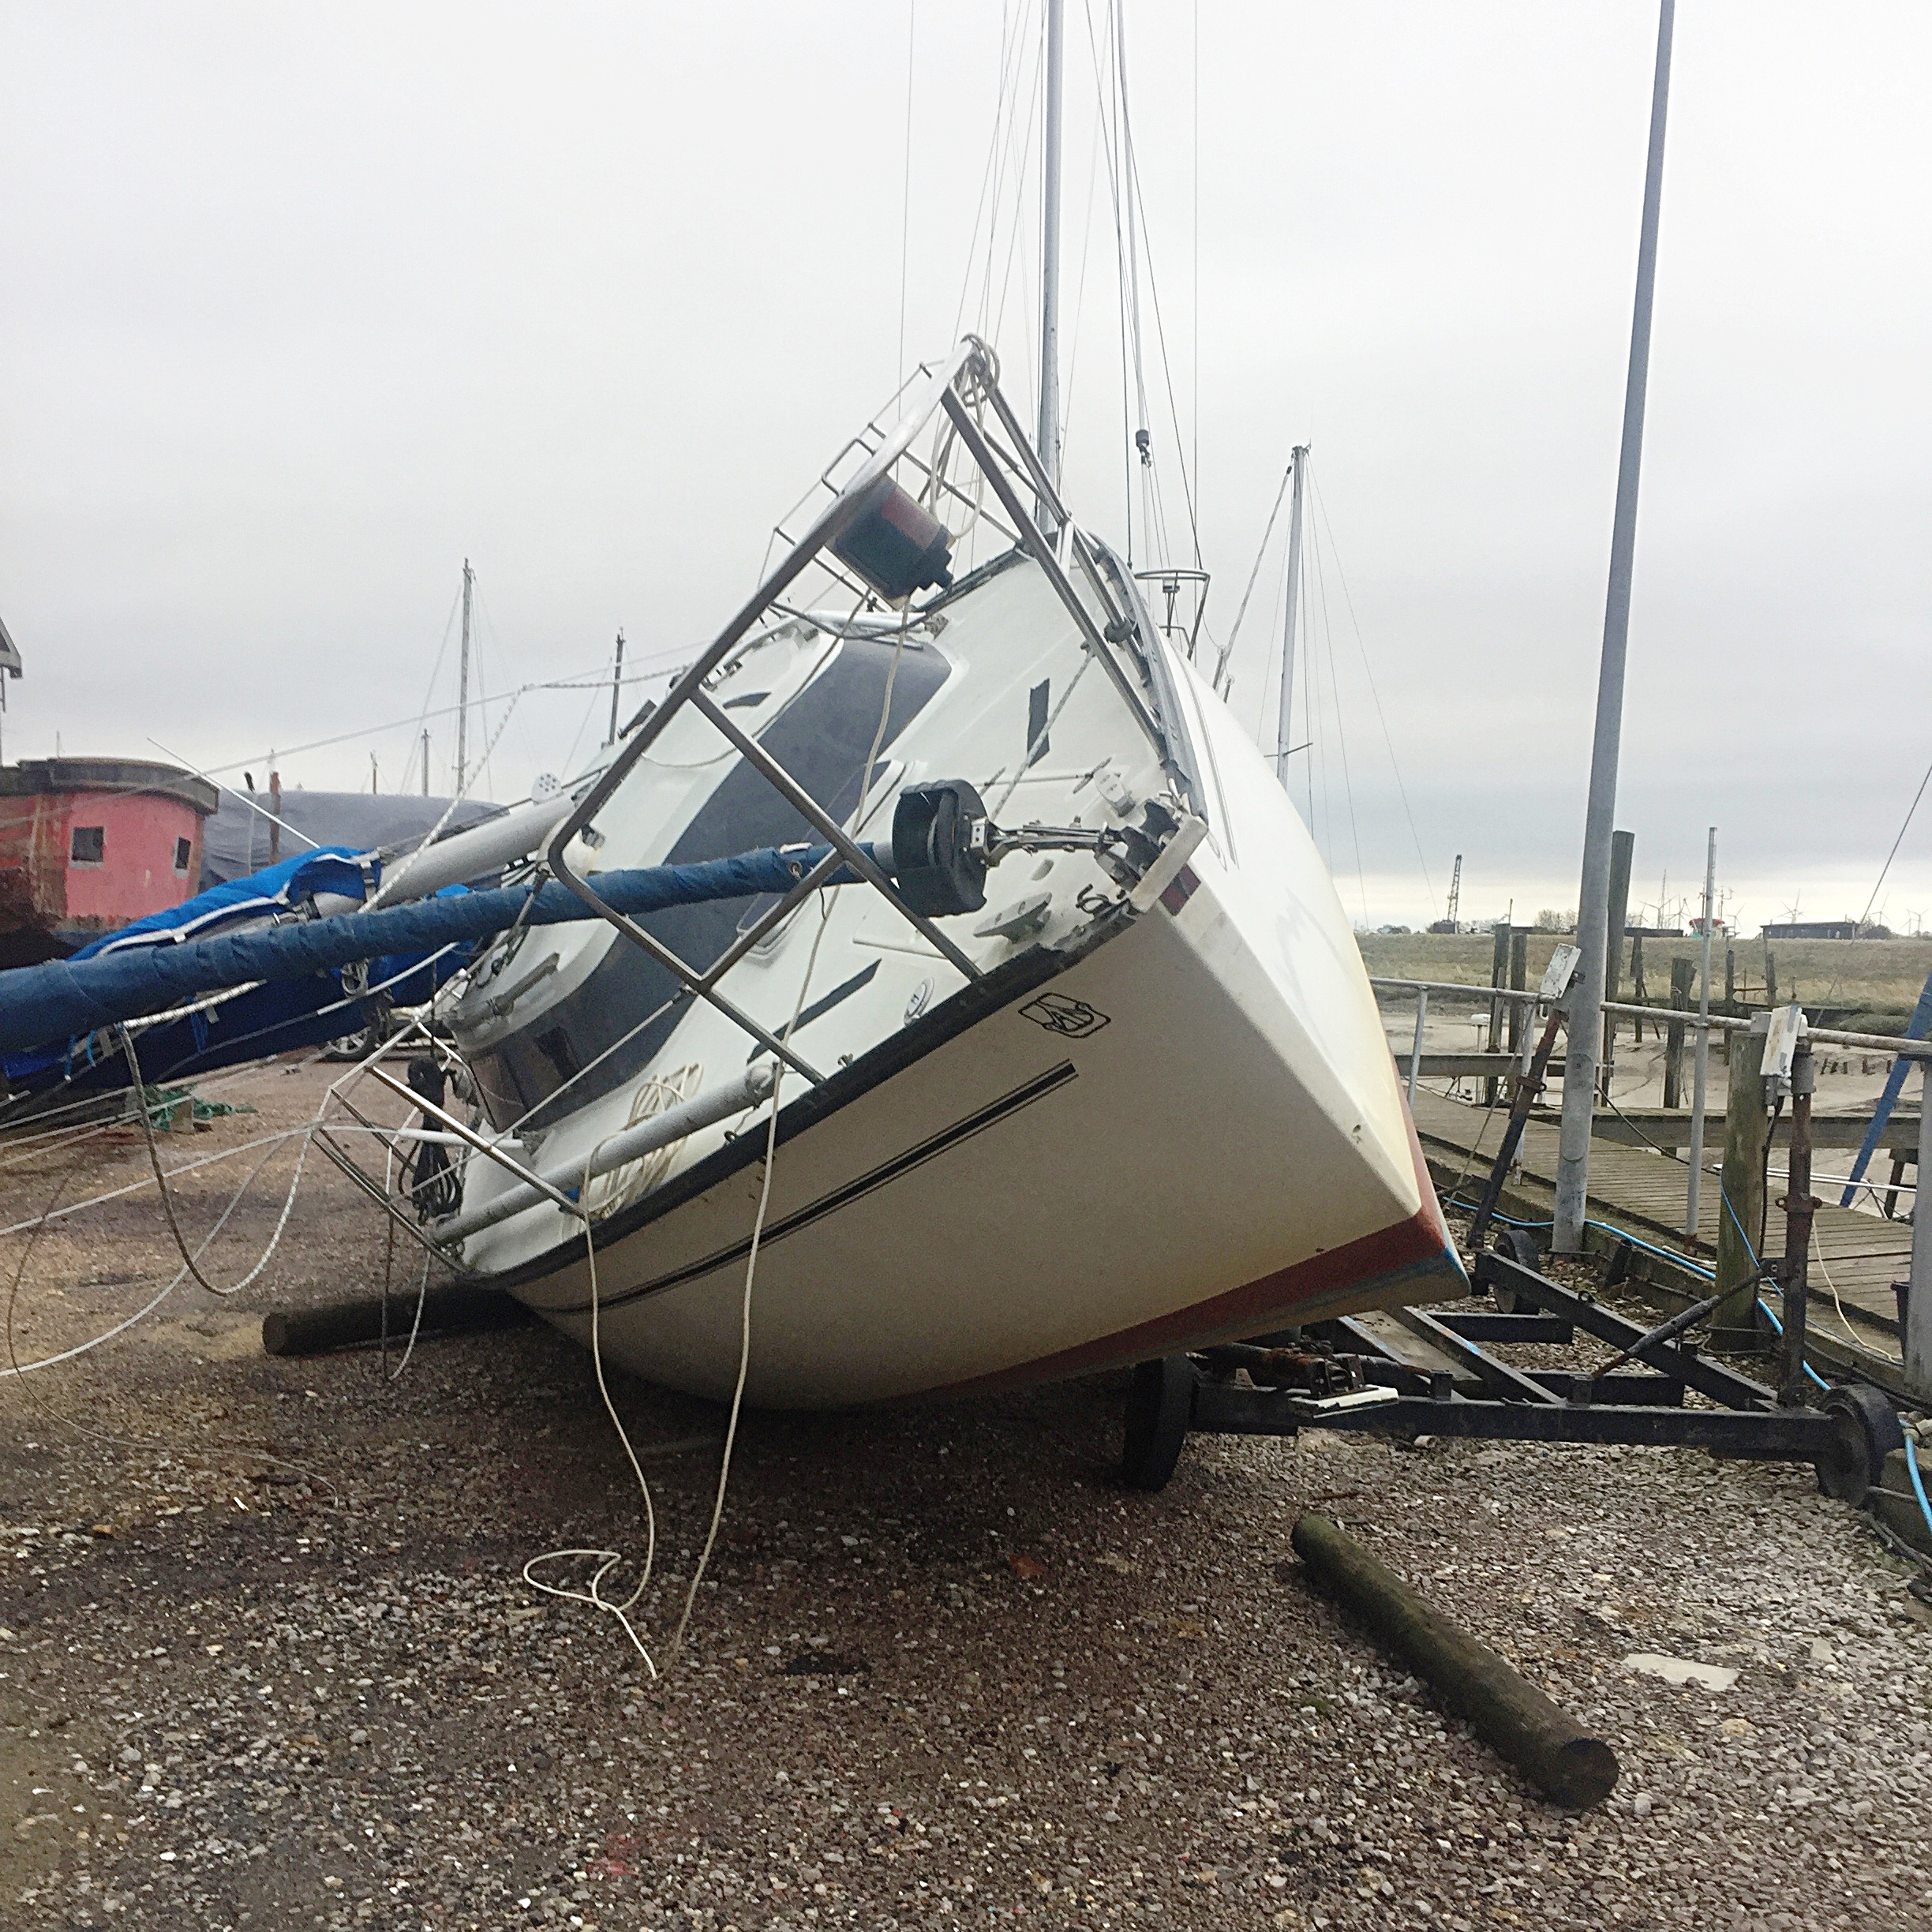 Even severely storm damaged vessels can be recovered and repaired.